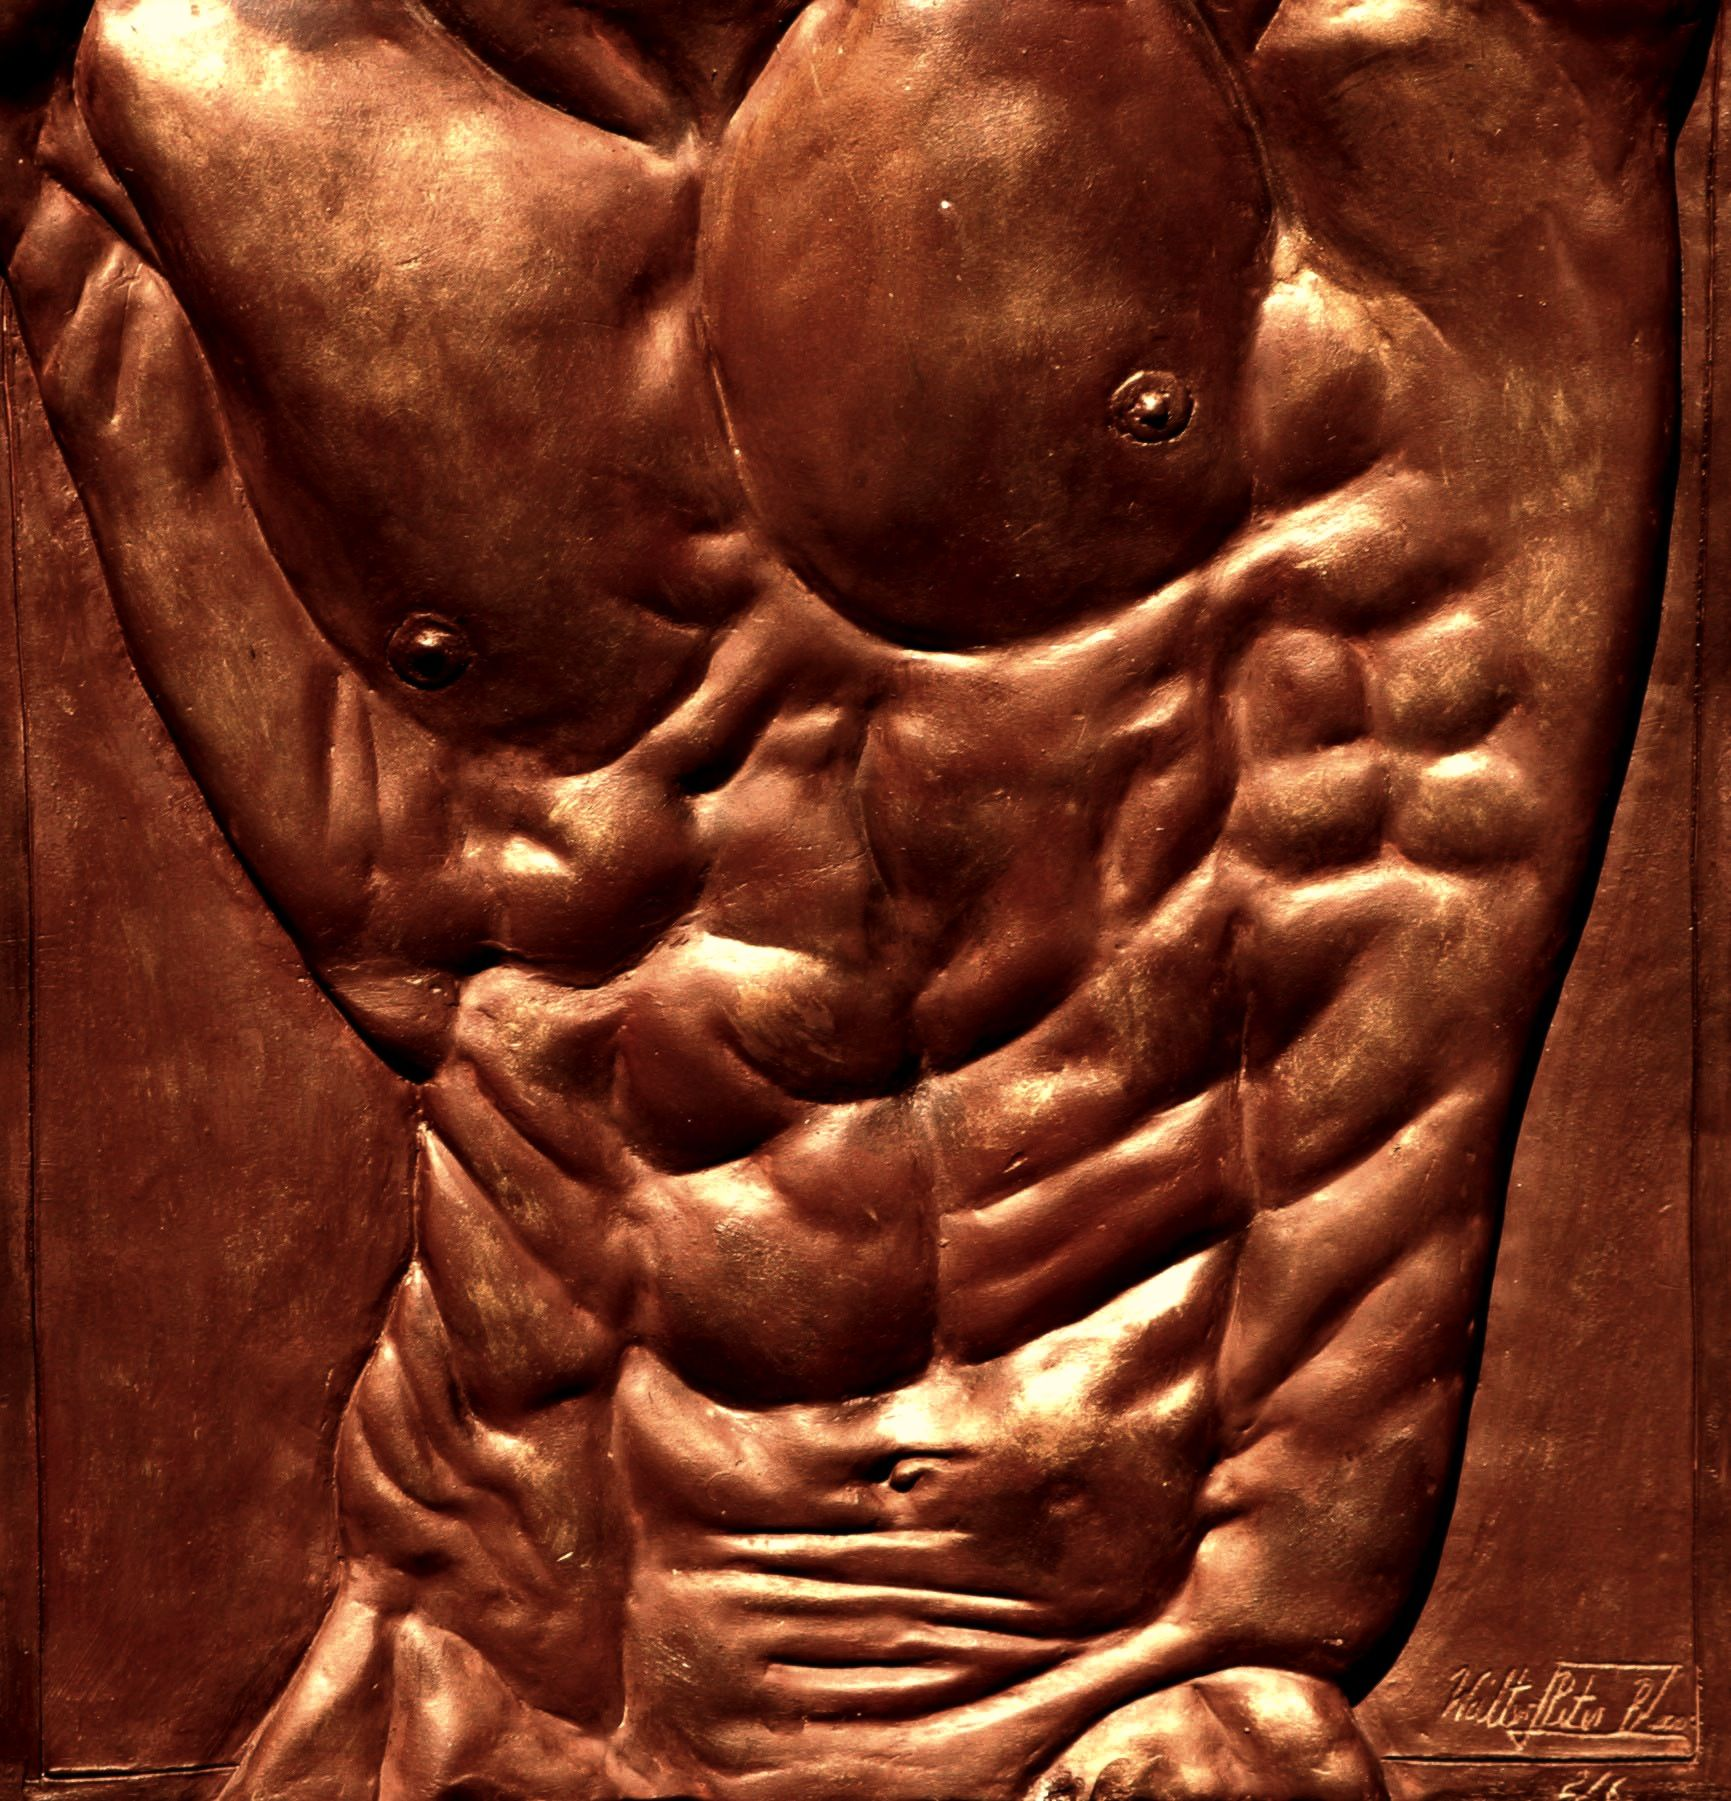 Torse d'Hercule,Walter Peter Brenner,Sculpture contemporaine